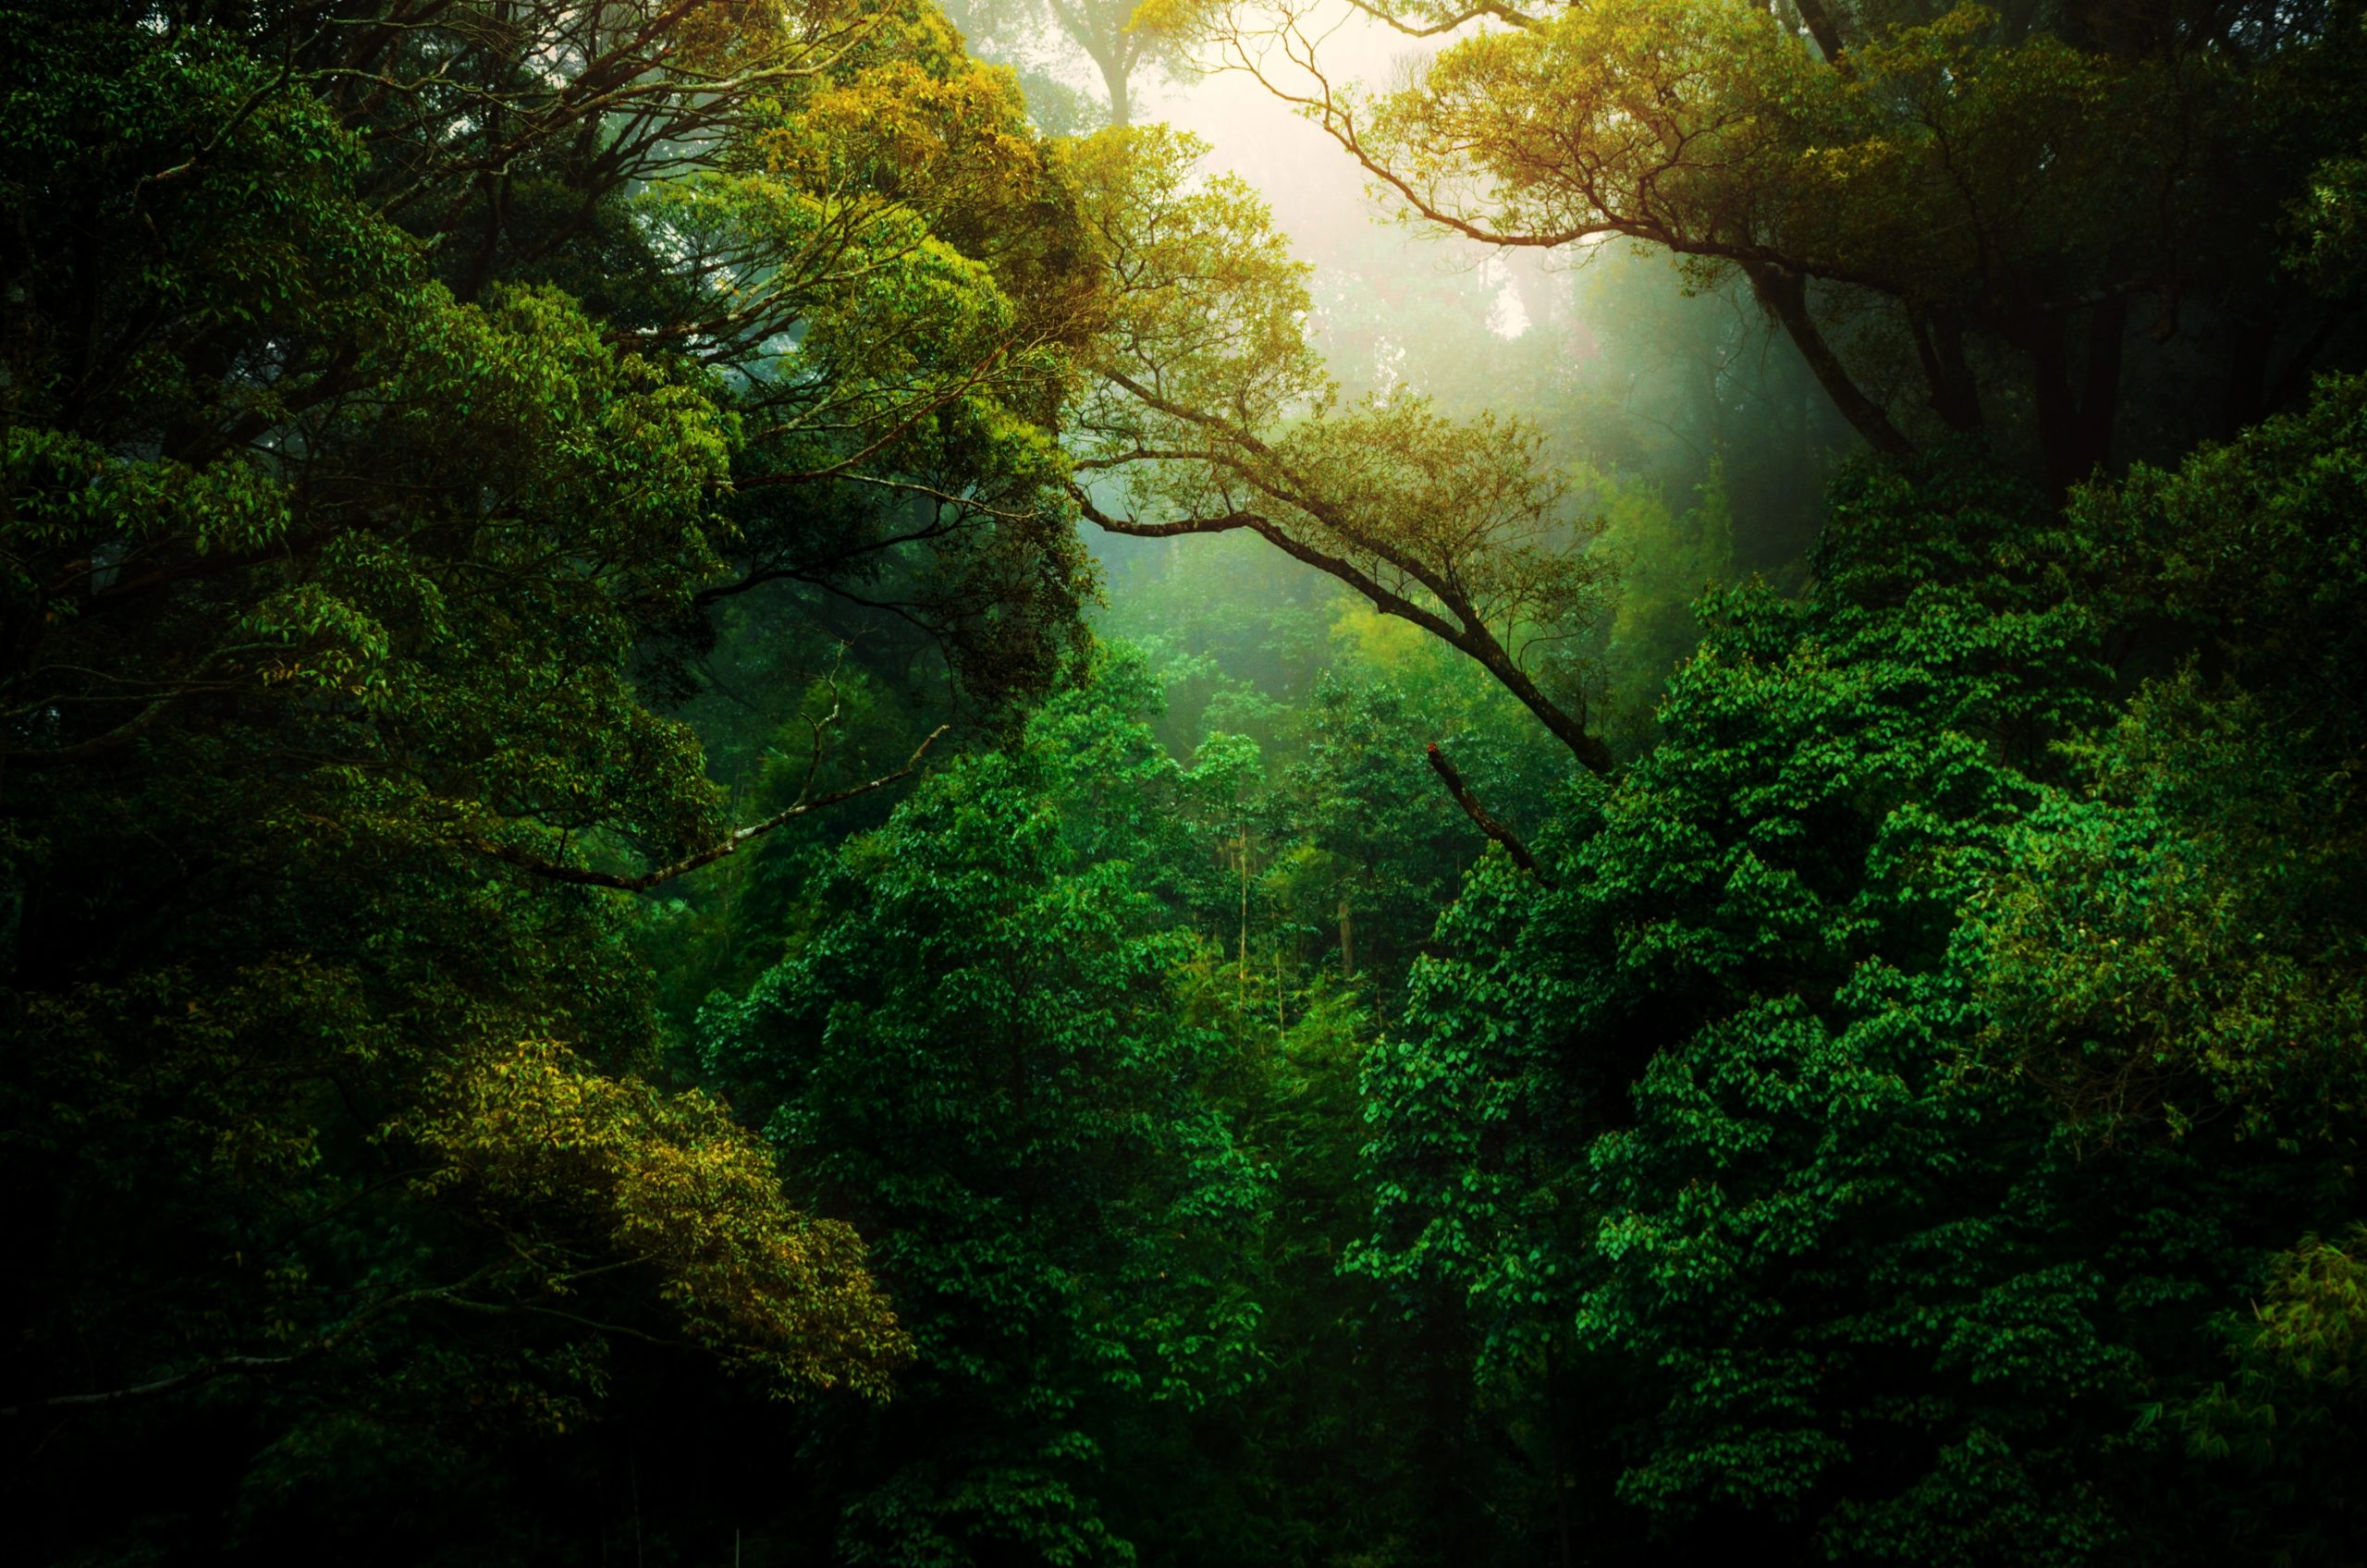 sunlight coming through the trees of a rainforest